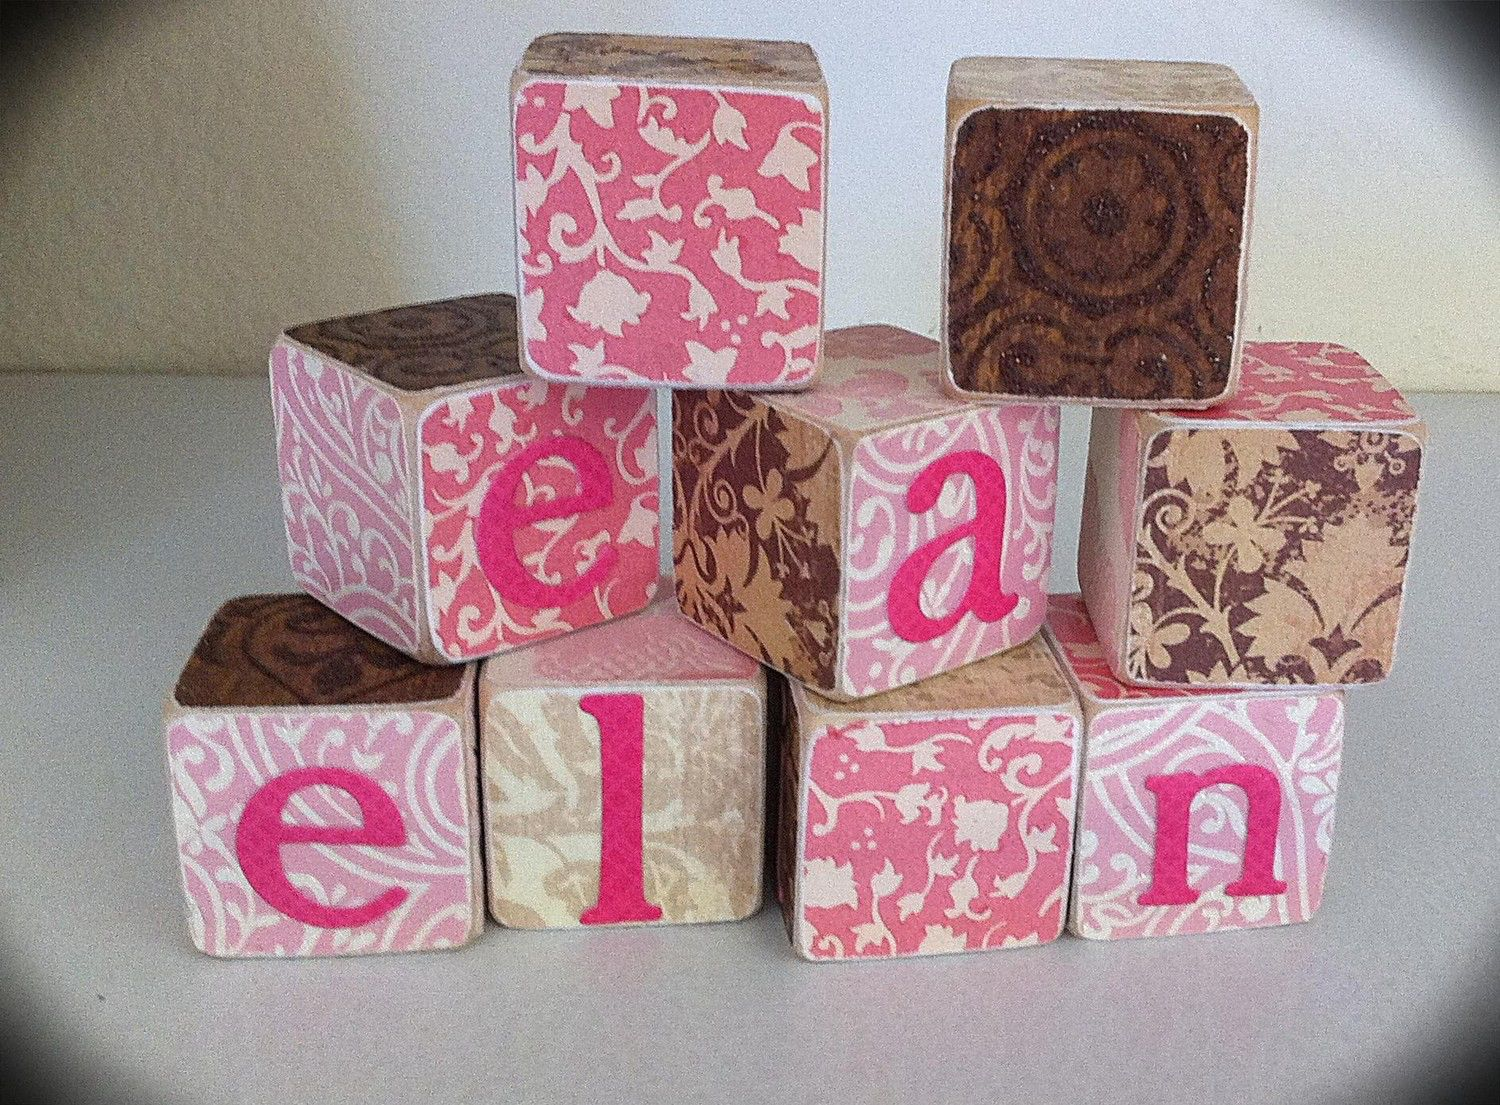 Personalized kids gifts - baby Wood Shabby Chic Vintage Blocks -  Personalized nursery decor - photo props baby shower - Personalized gifts by ChloesCouture on Etsy https://www.etsy.com/listing/55486110/personalized-kids-gifts-baby-wood-shabby